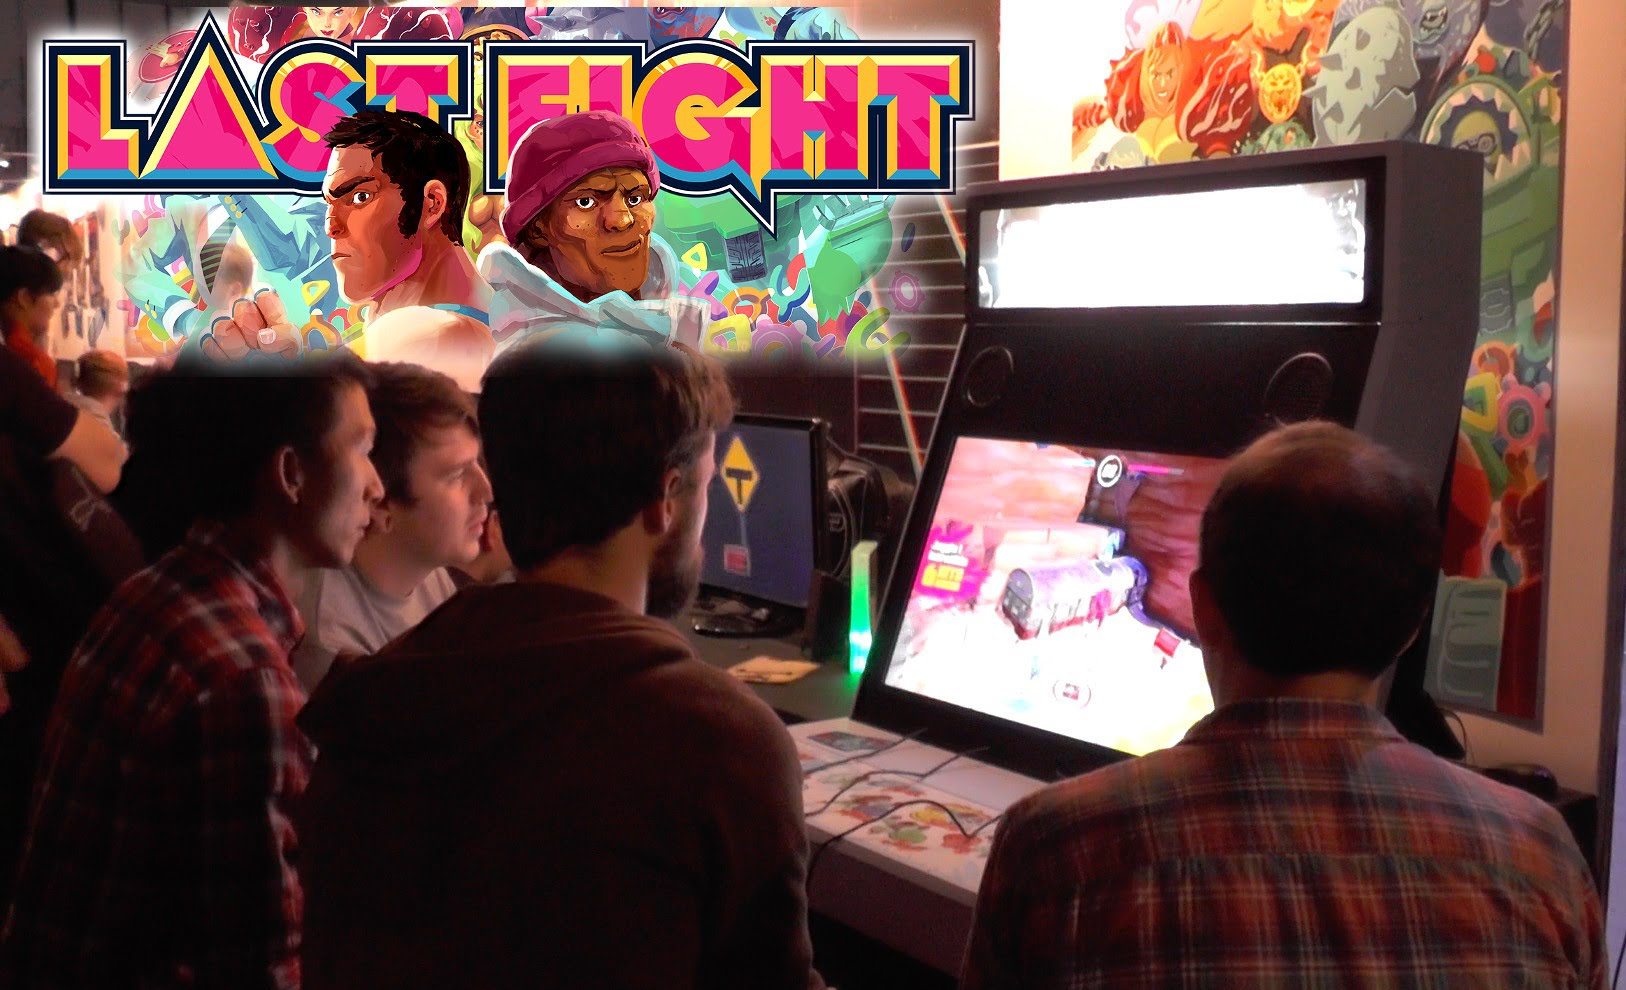 Last Fight – Arcade Cabinate Hands-On (PS4, Xbox One, 360, PS3, PC)